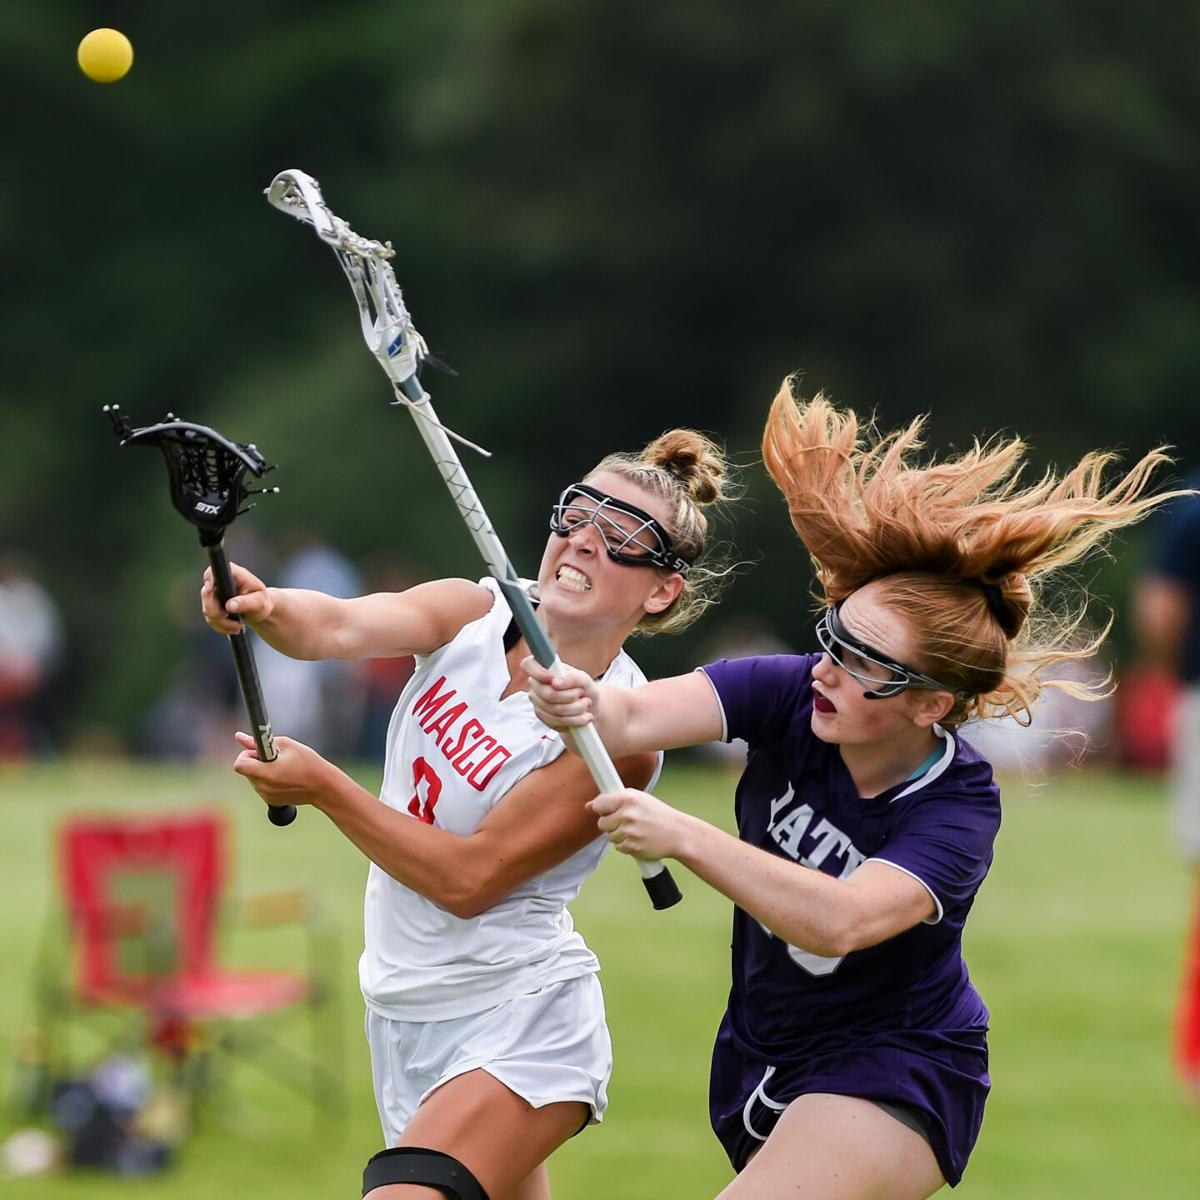 Masconomet girls lacrosse AND baseball state tournament playoff games